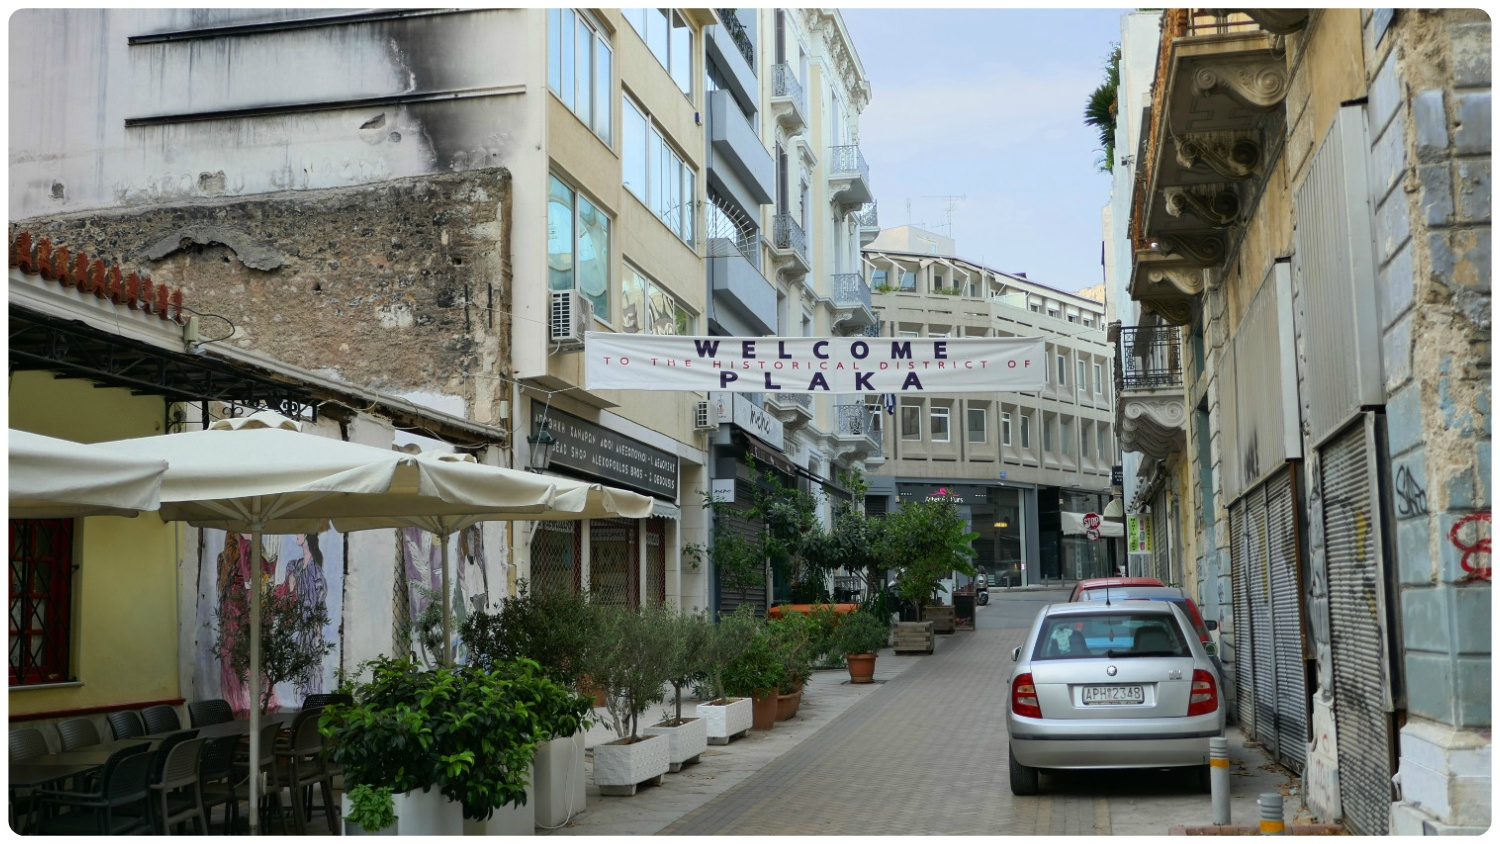 Plaka is a very well known neighborhood in Athens!